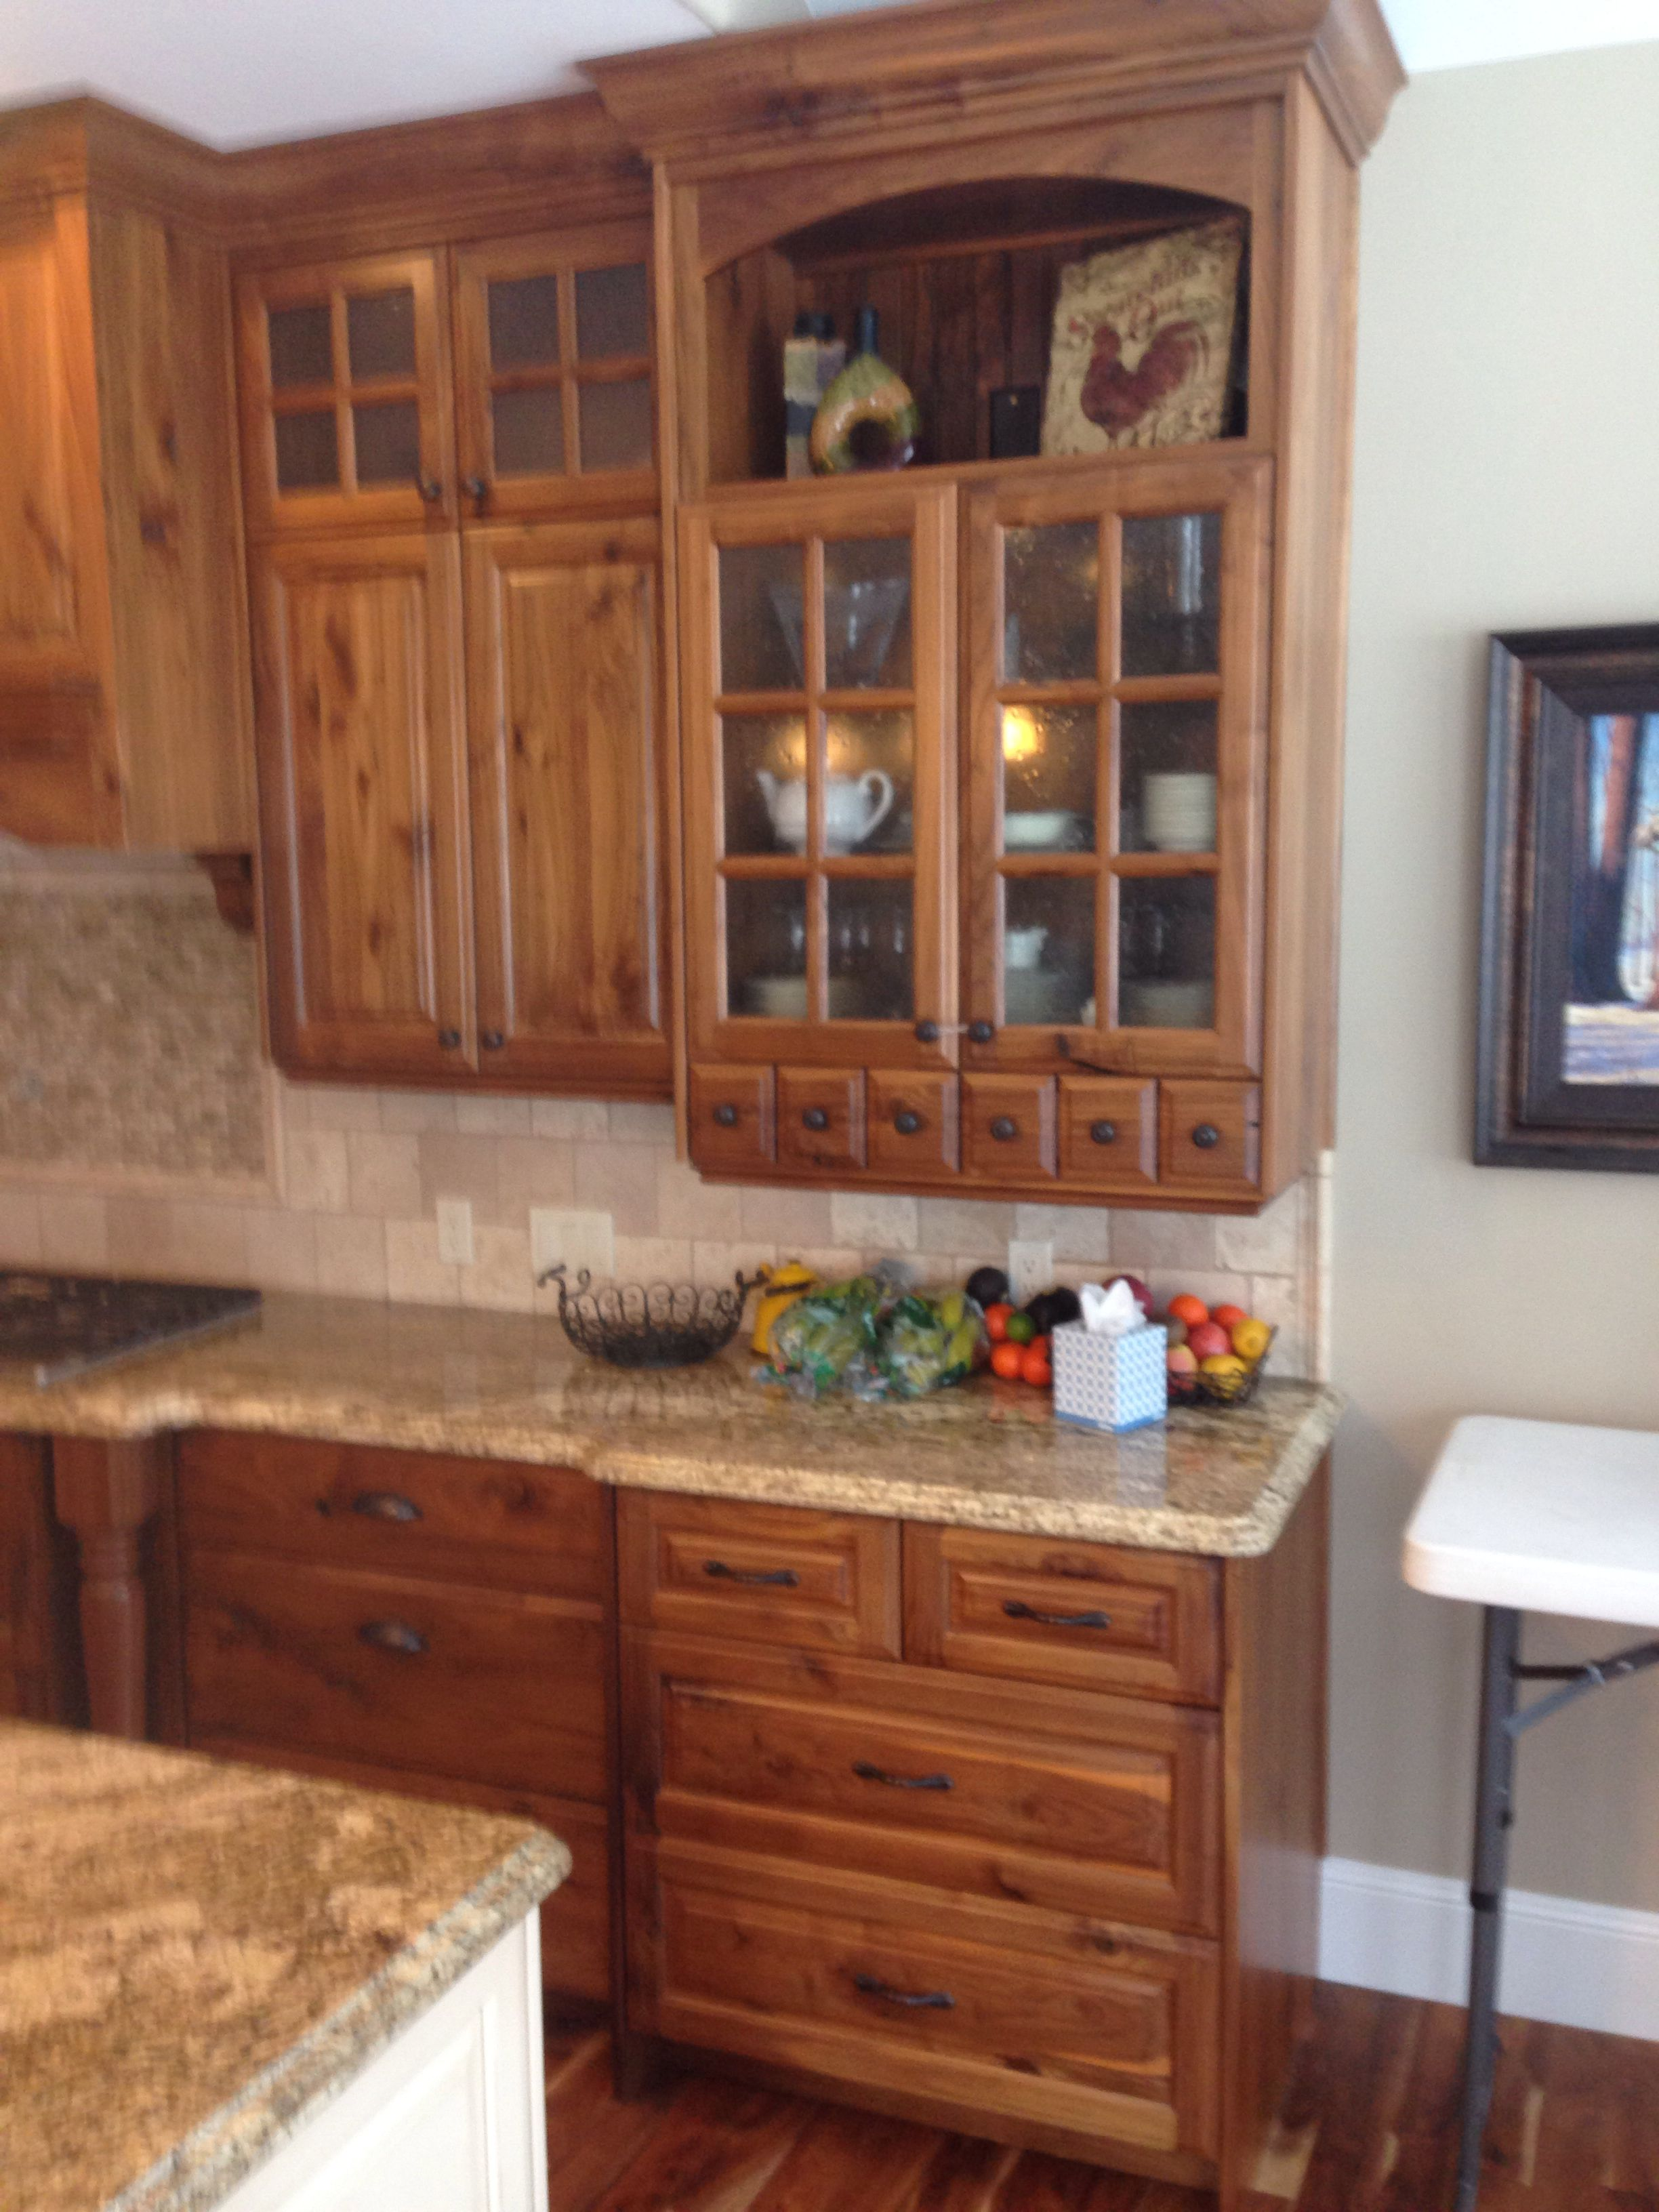 Rustic Walnut Kitchen Cabinets Cottage Kitchen Cabinets Walnut Kitchen Cabinets Contemporary Walnut Kitchen